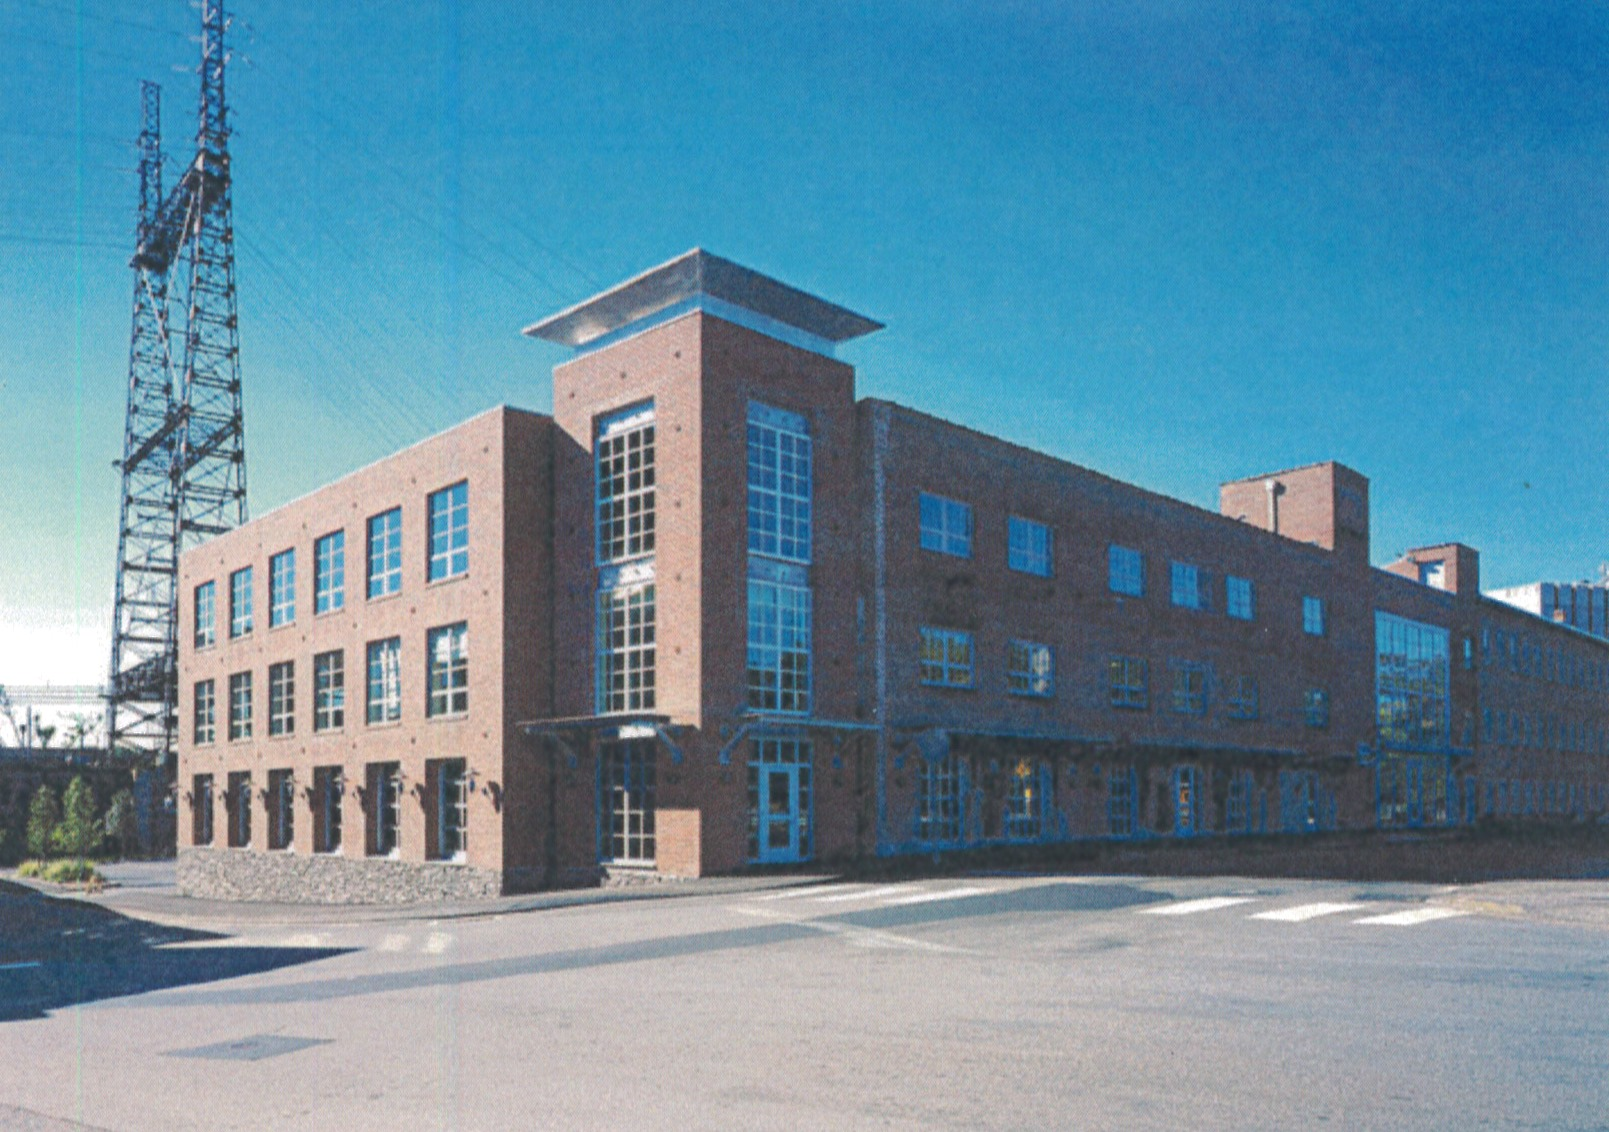 The Lock Company Building, a mid-19th century industrial building, has been transformed into the Lock Arts and Technology Center, providing retail space and office space for firms in the creative technology fields.